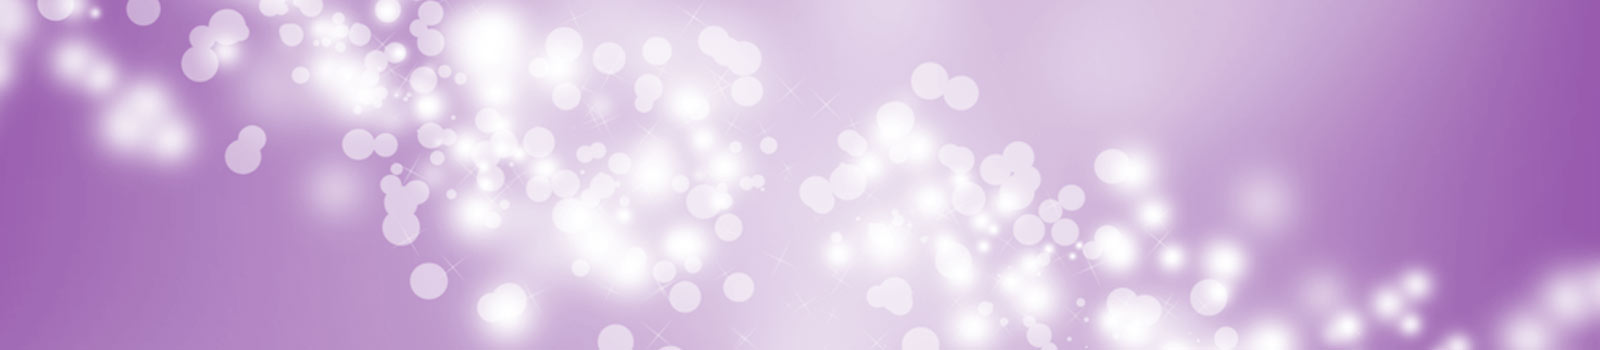 background_sparkle2